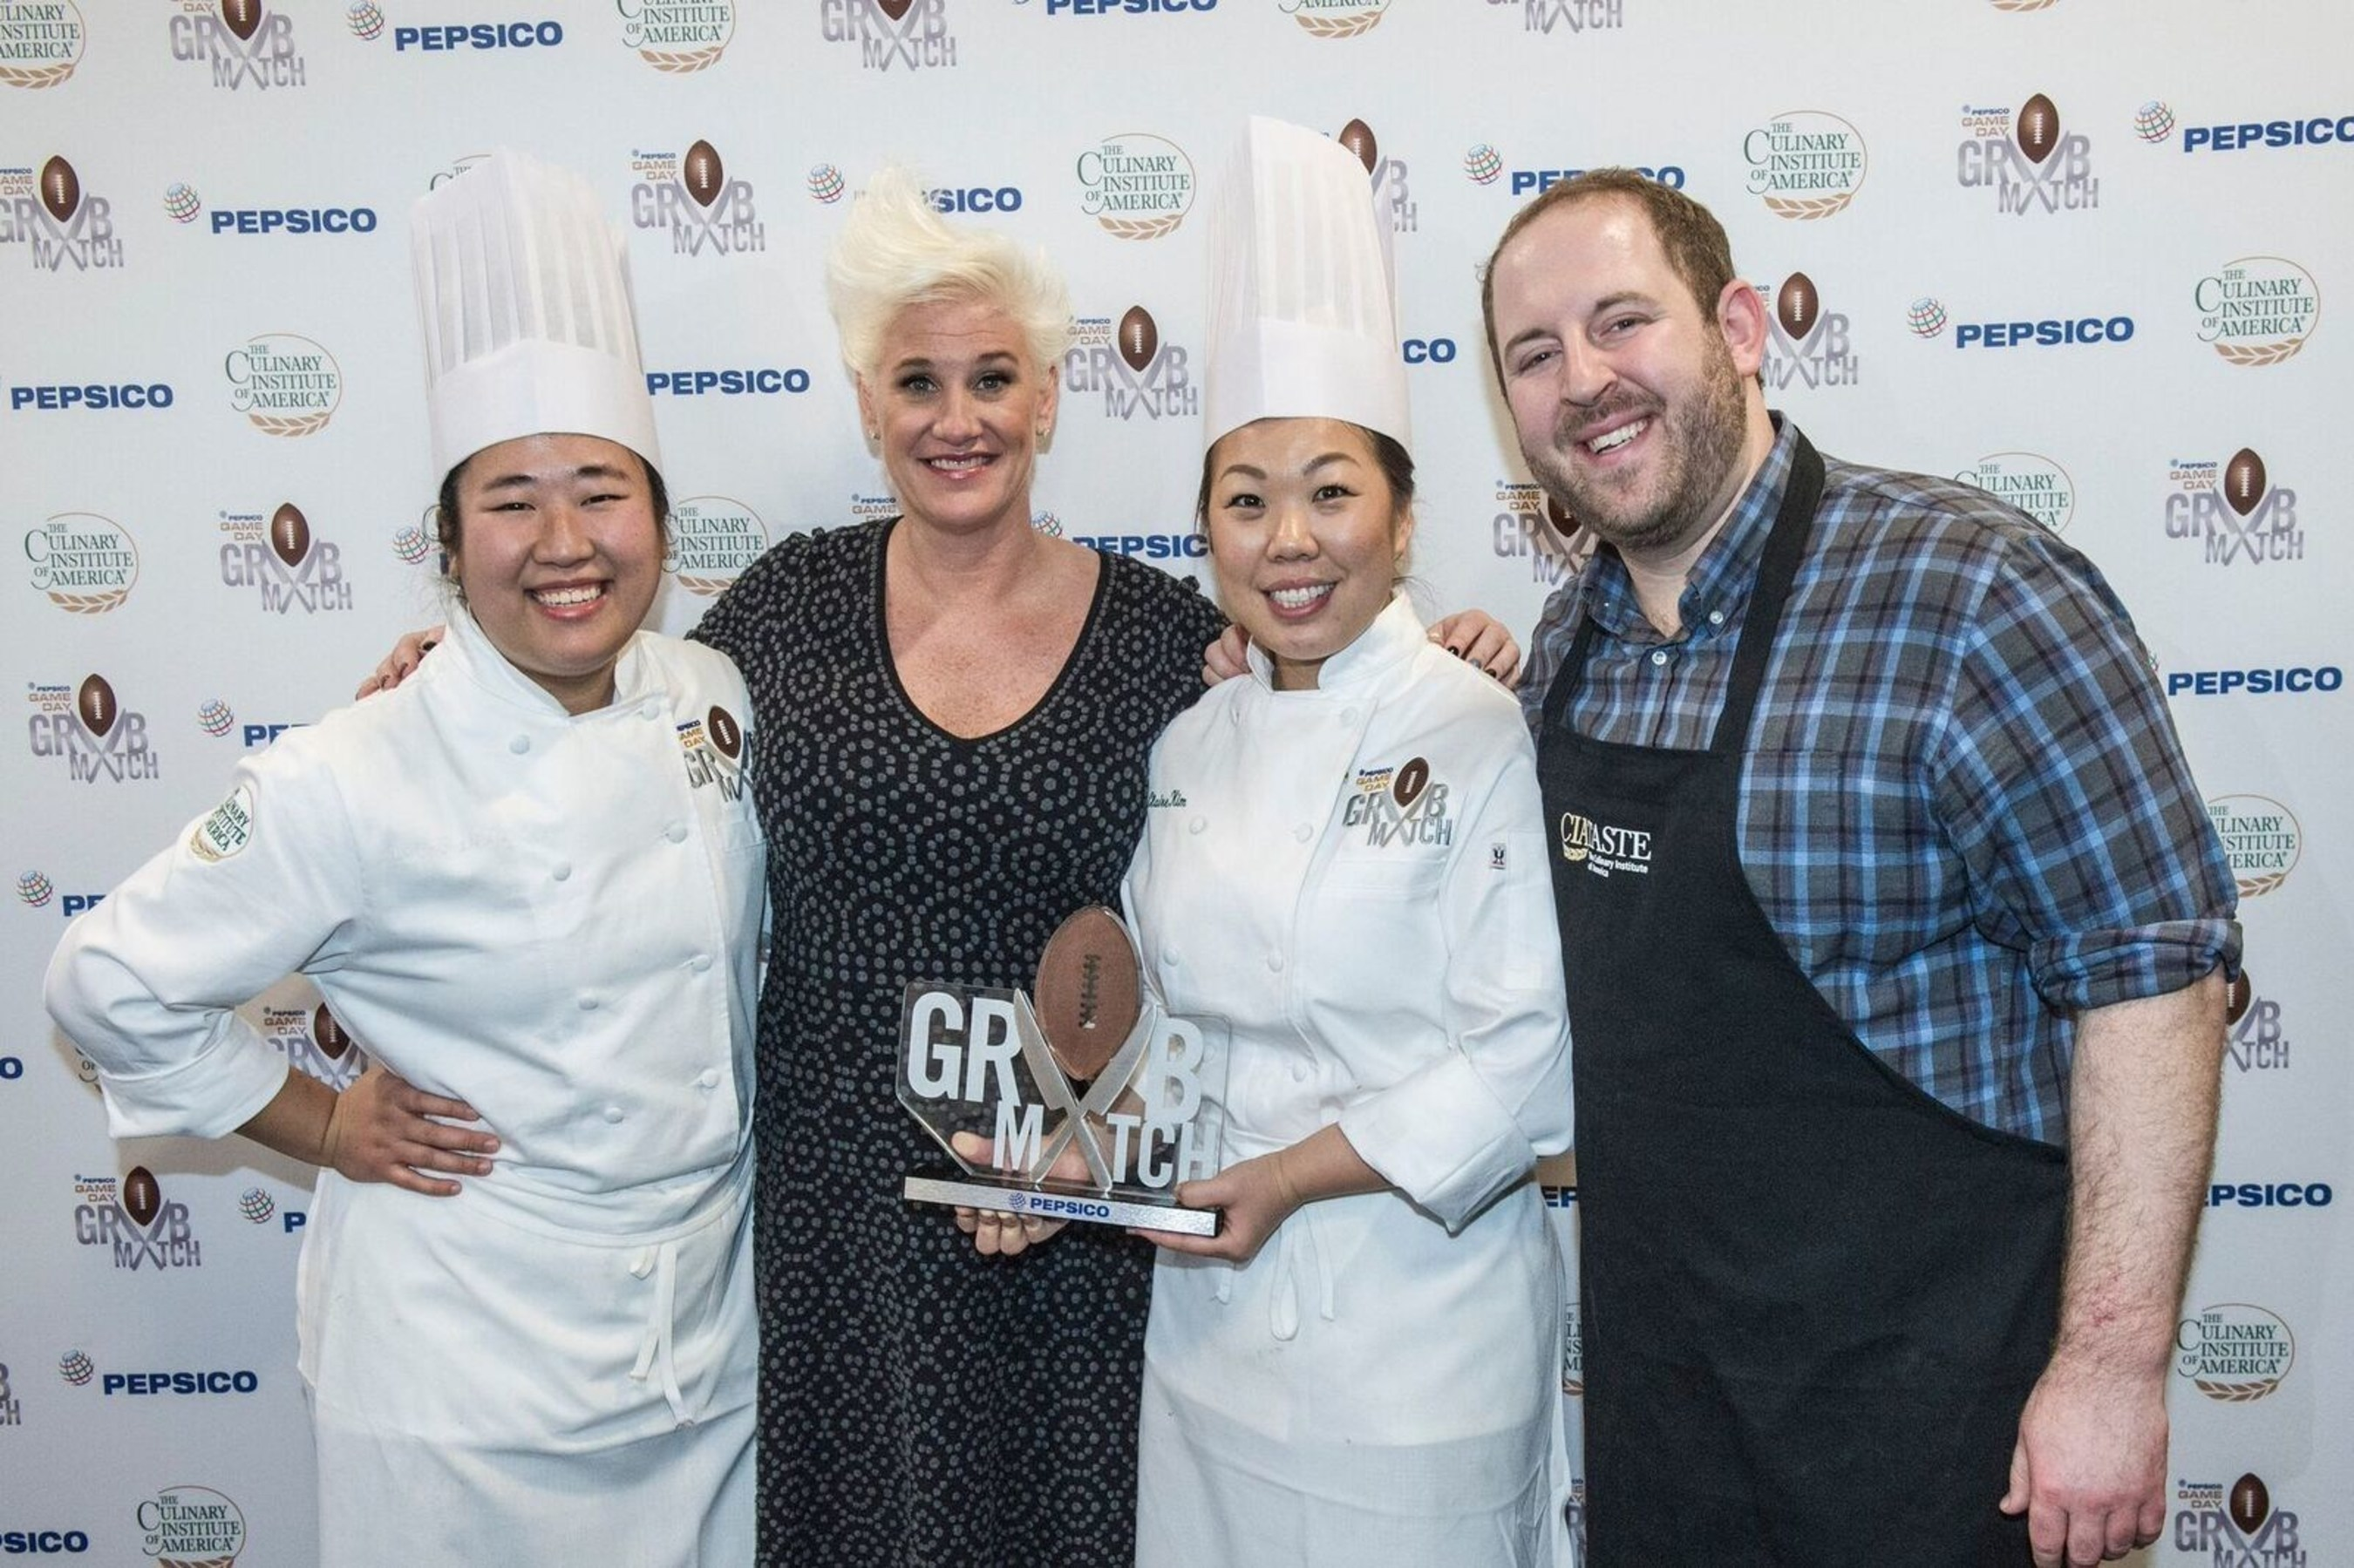 Food Network Chef Anne Burrell with the winning team of PepsiCo's Game Day Grub Match